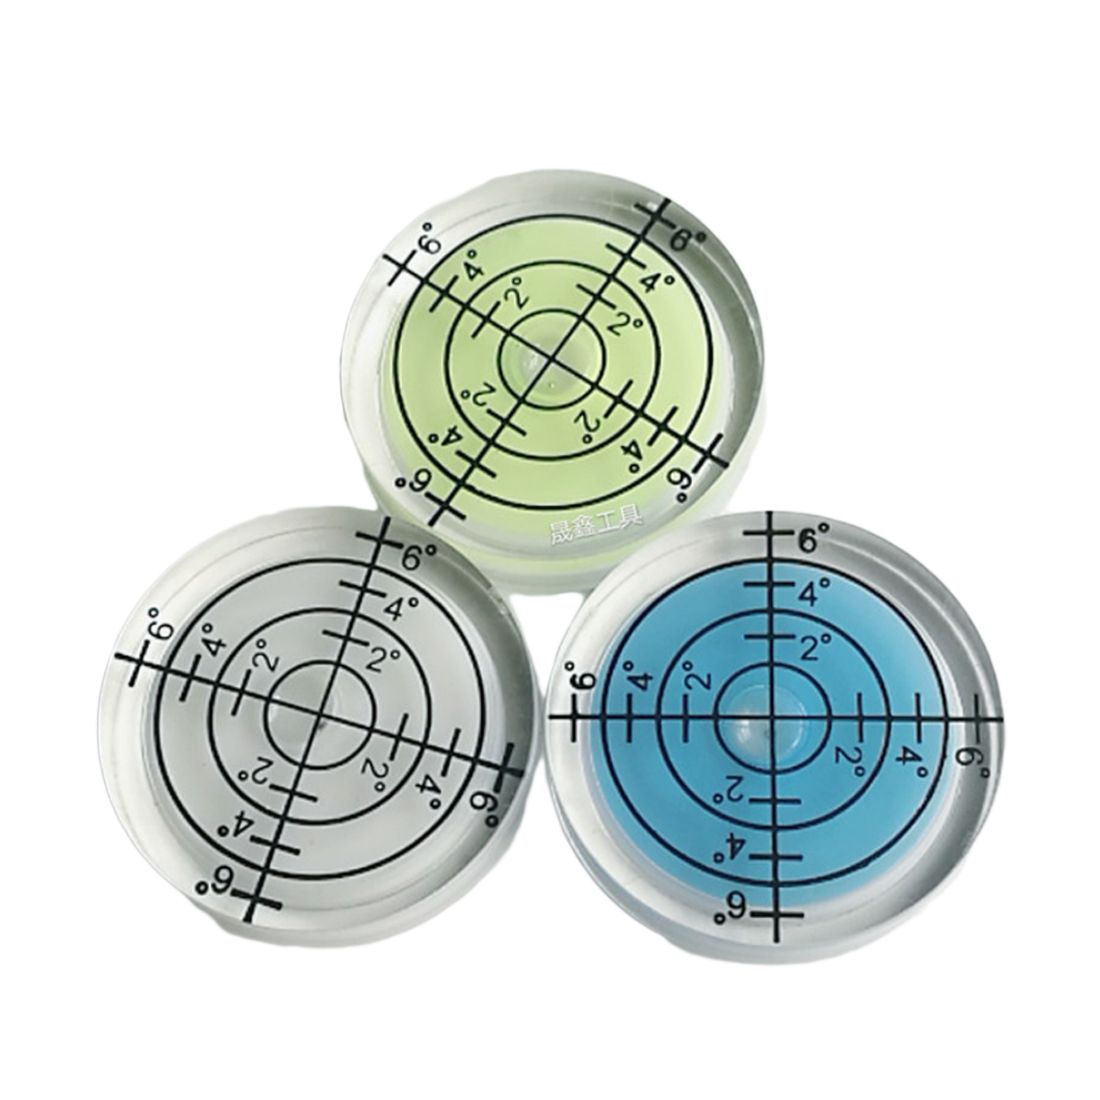 1pcs 32 7MM White Green Blue Color Bull seye Bubble level Round Level Bubble Accessories for